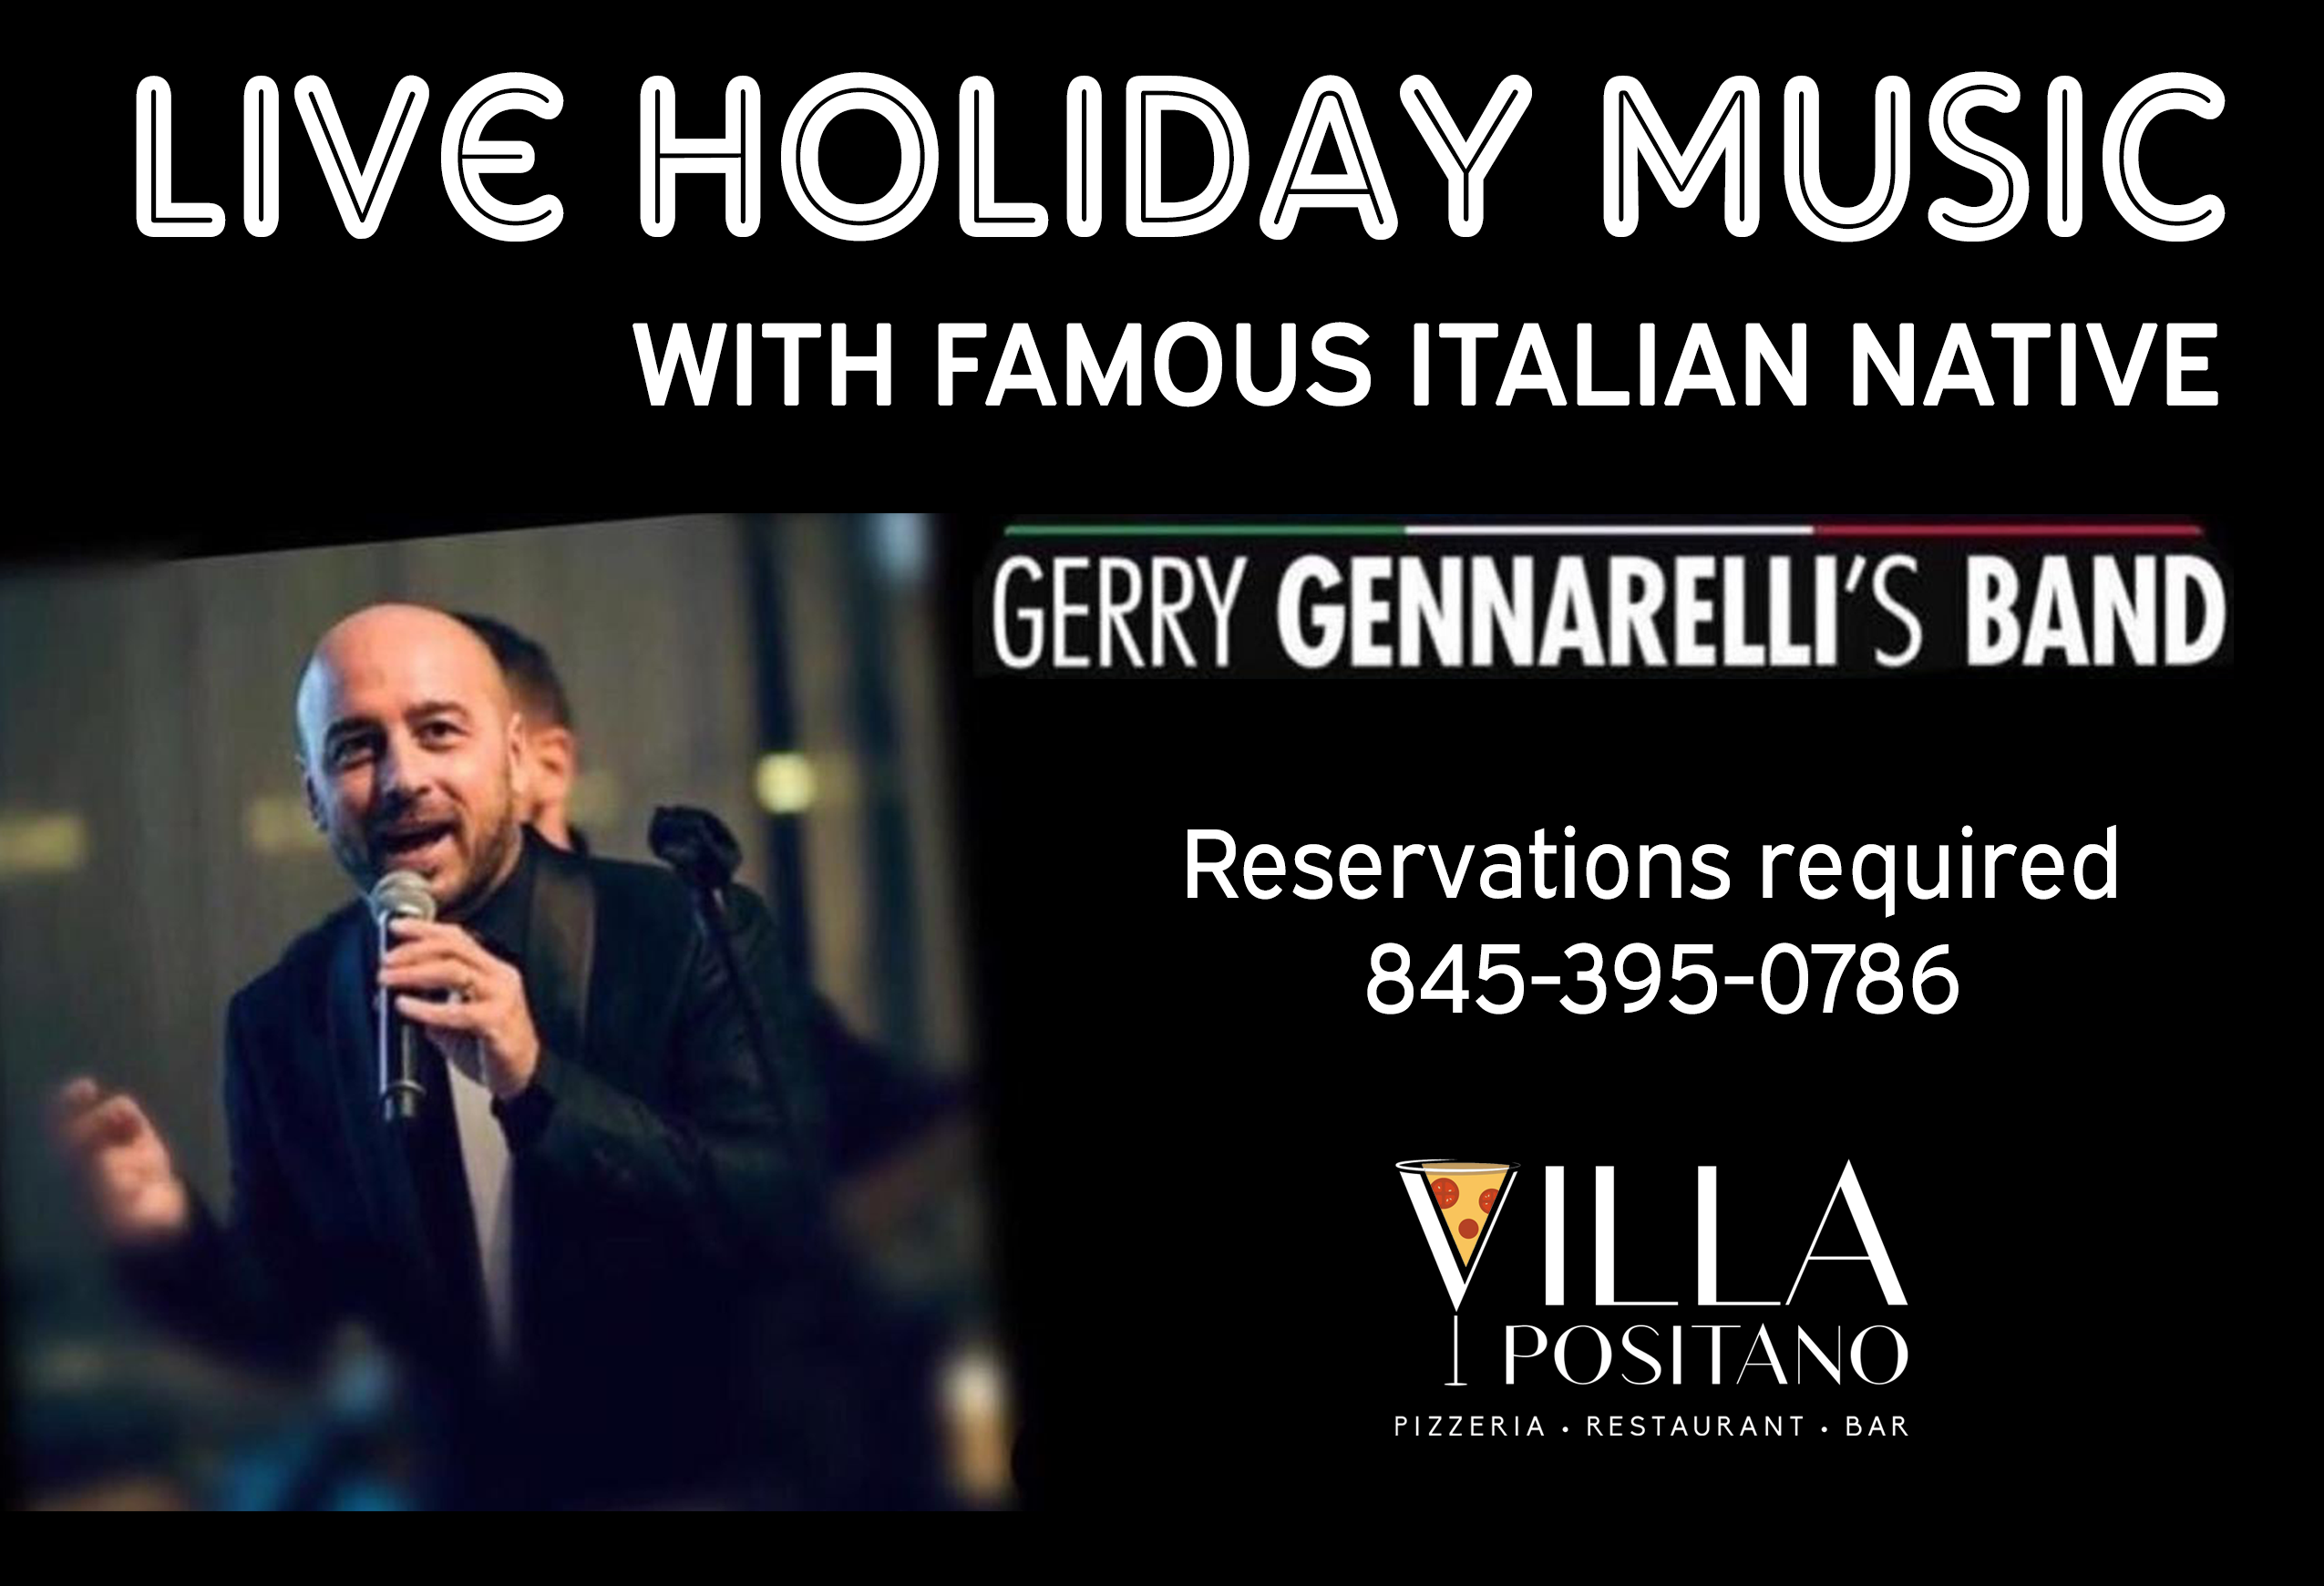 Live Holiday Music with famous Italian native Gerry Gennarelli